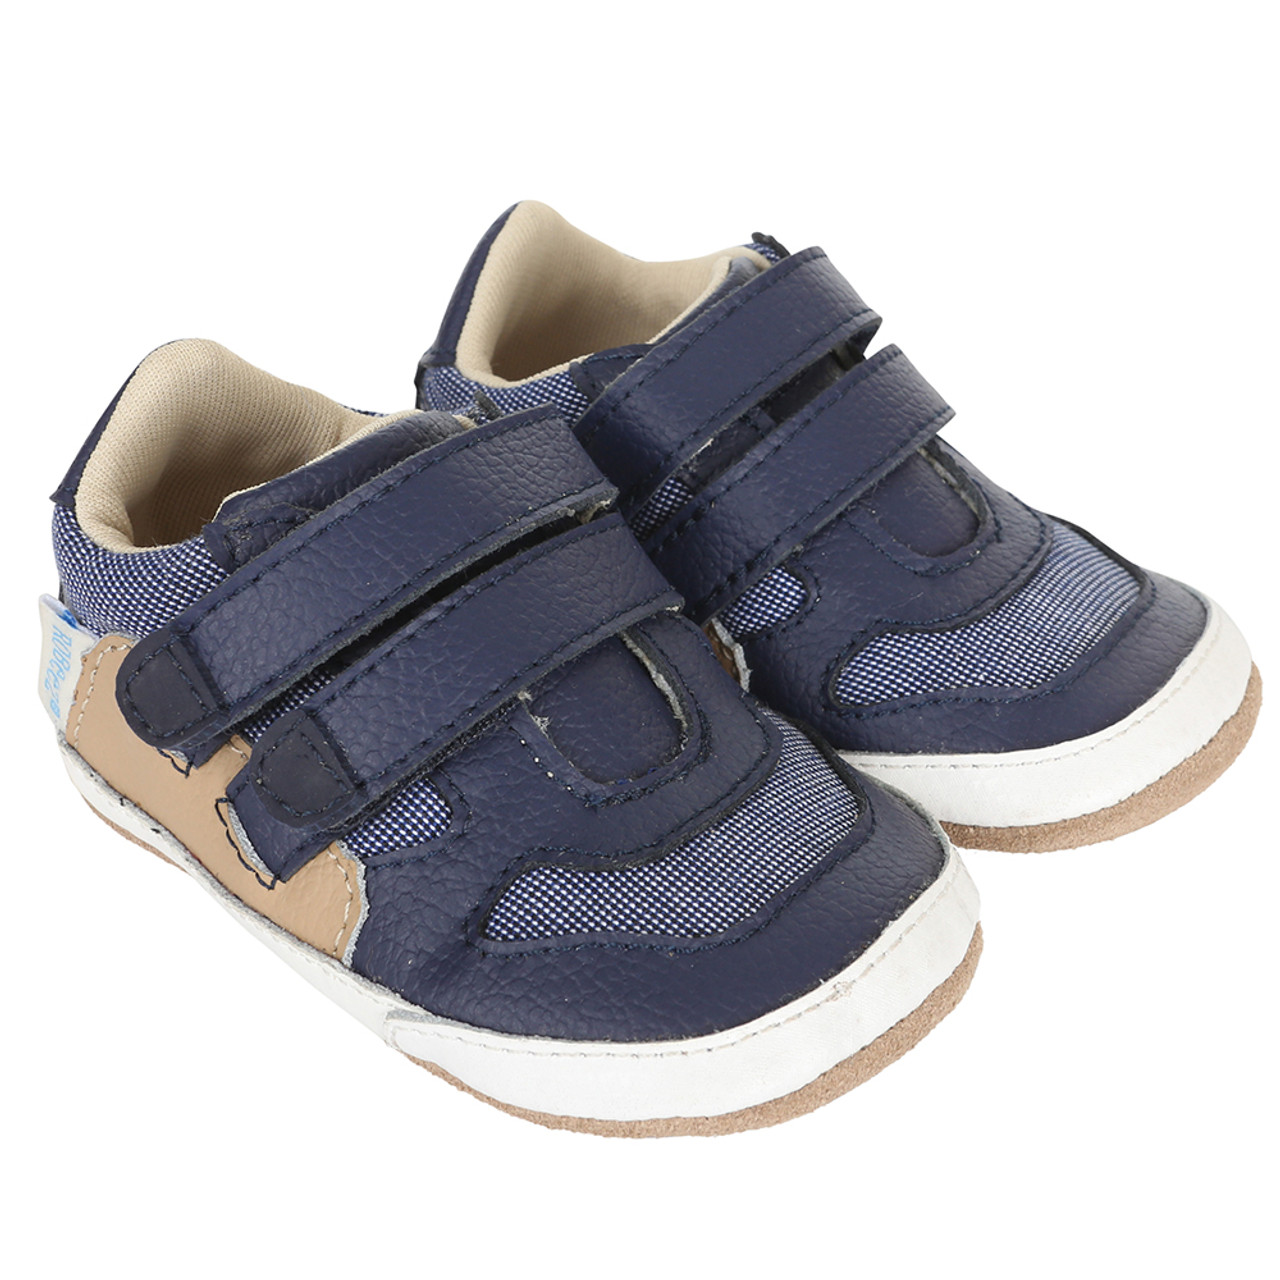 5b884fbf8878 Navy leather and canvas baby shoe for infants